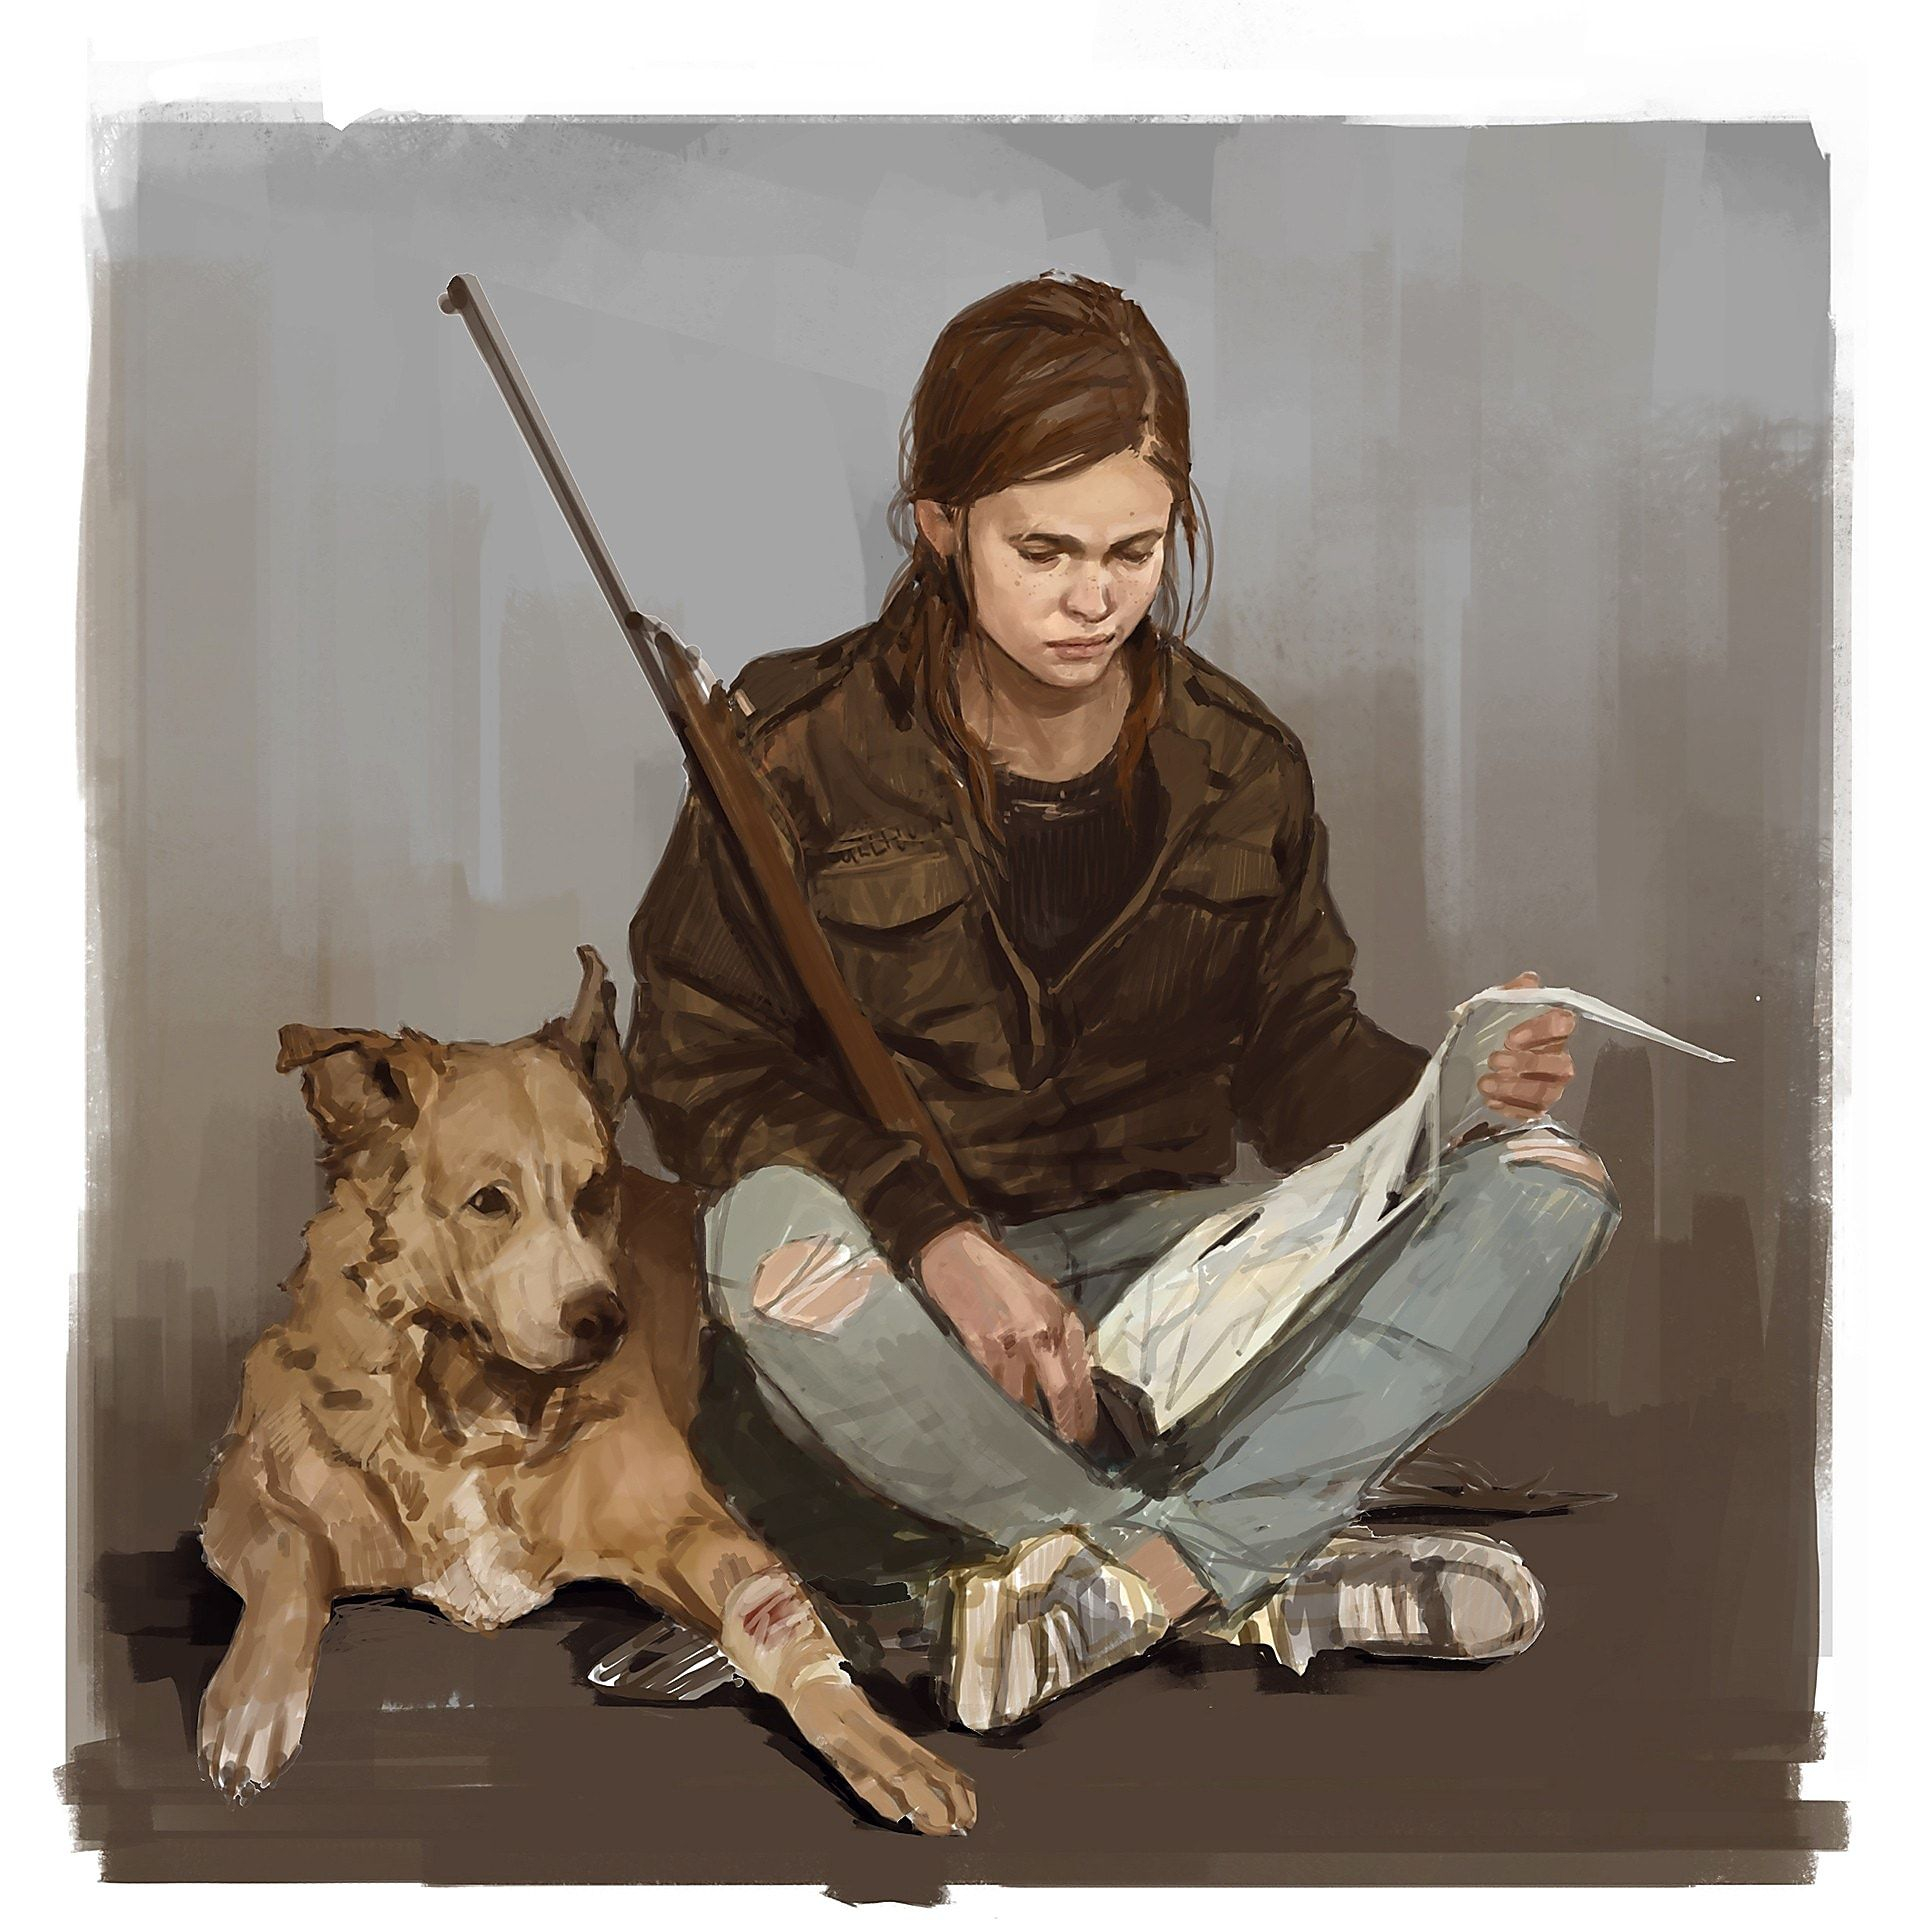 Ellie and Dog The Last of Us 2 Naughty Dog